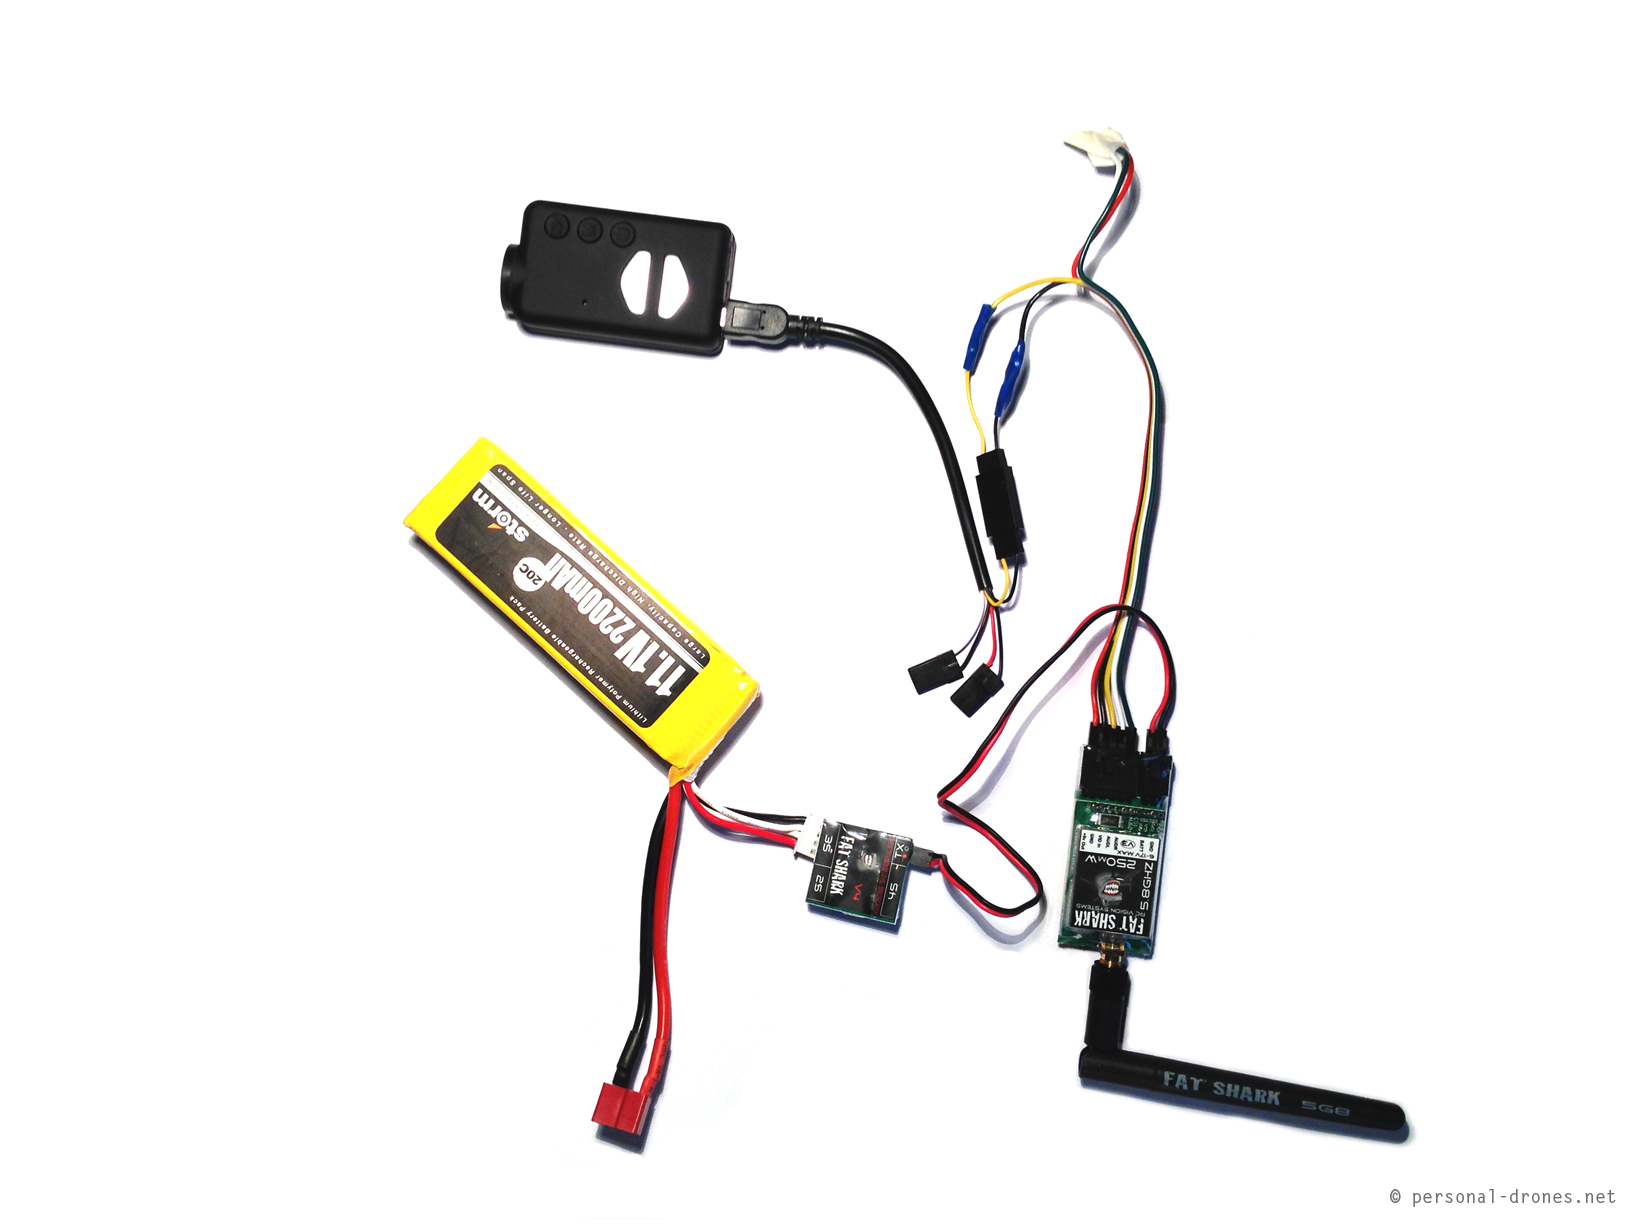 hight resolution of mobius camera connected to the fatshark 250mw video transmitter custom setup